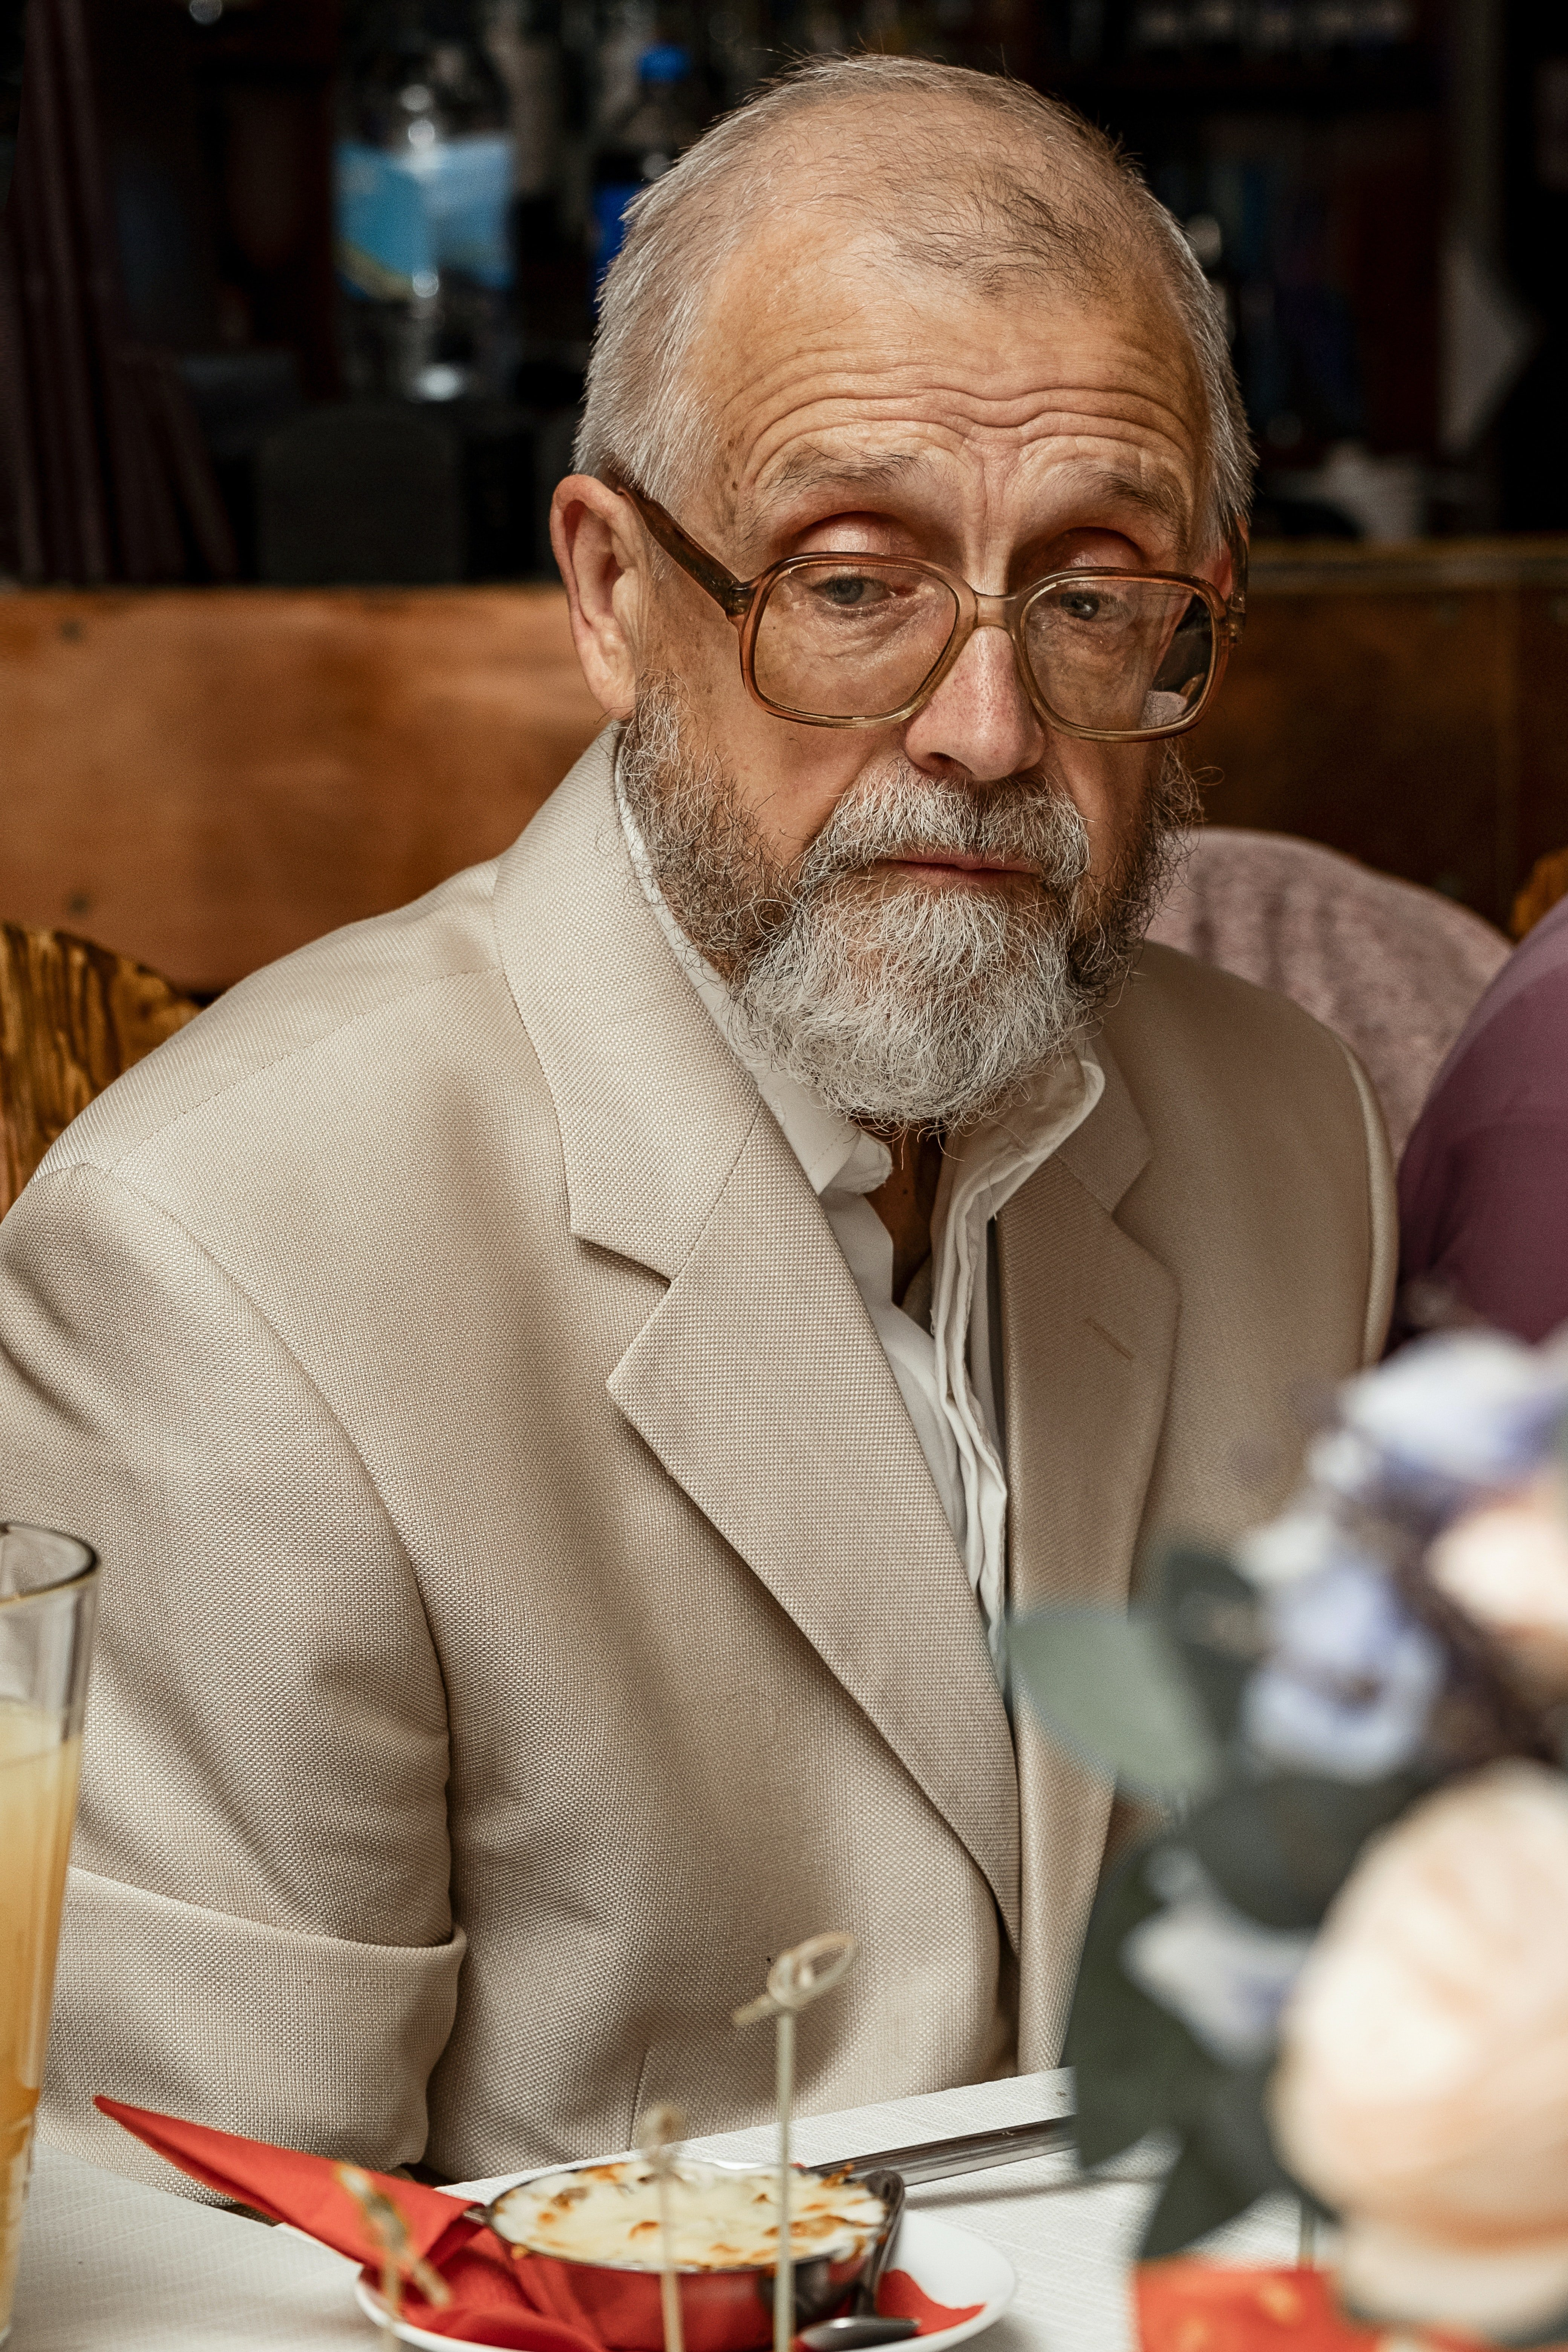 A confused old man | Photo: Pexels